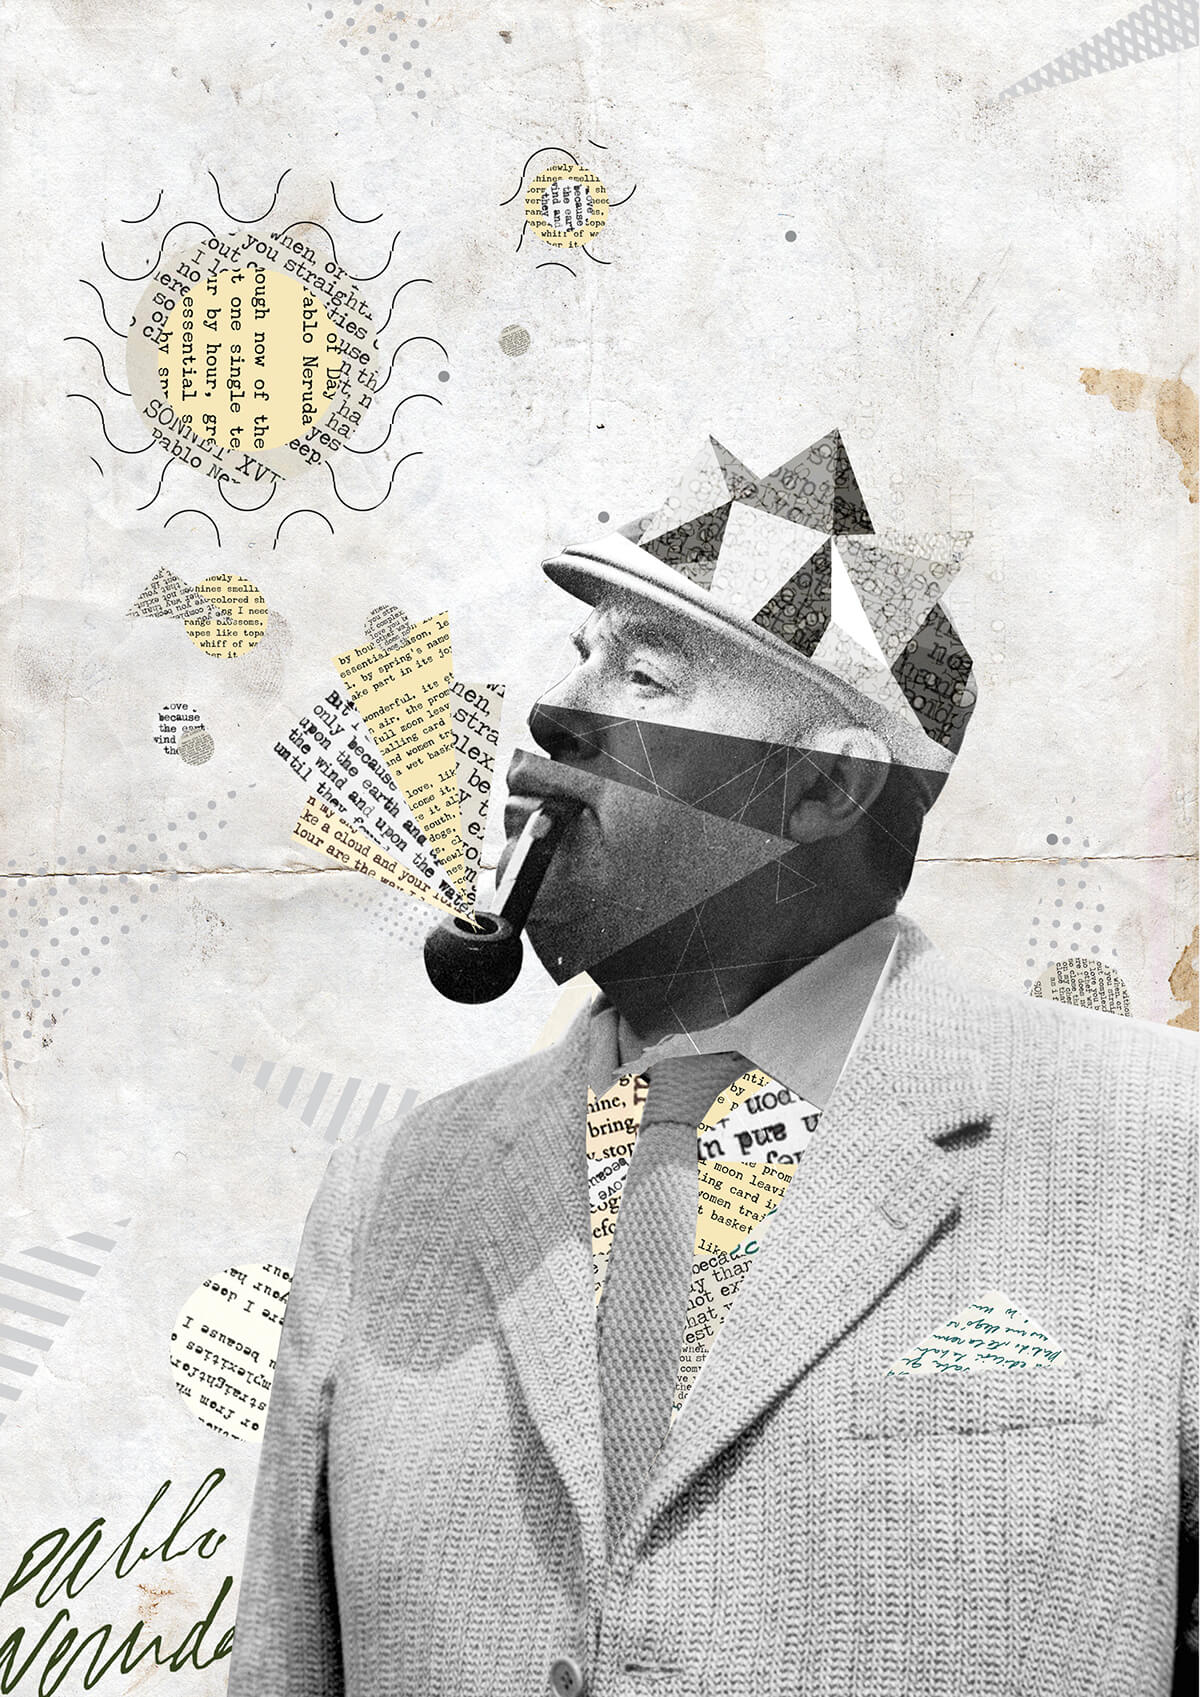 Collage de Pablo Neruda